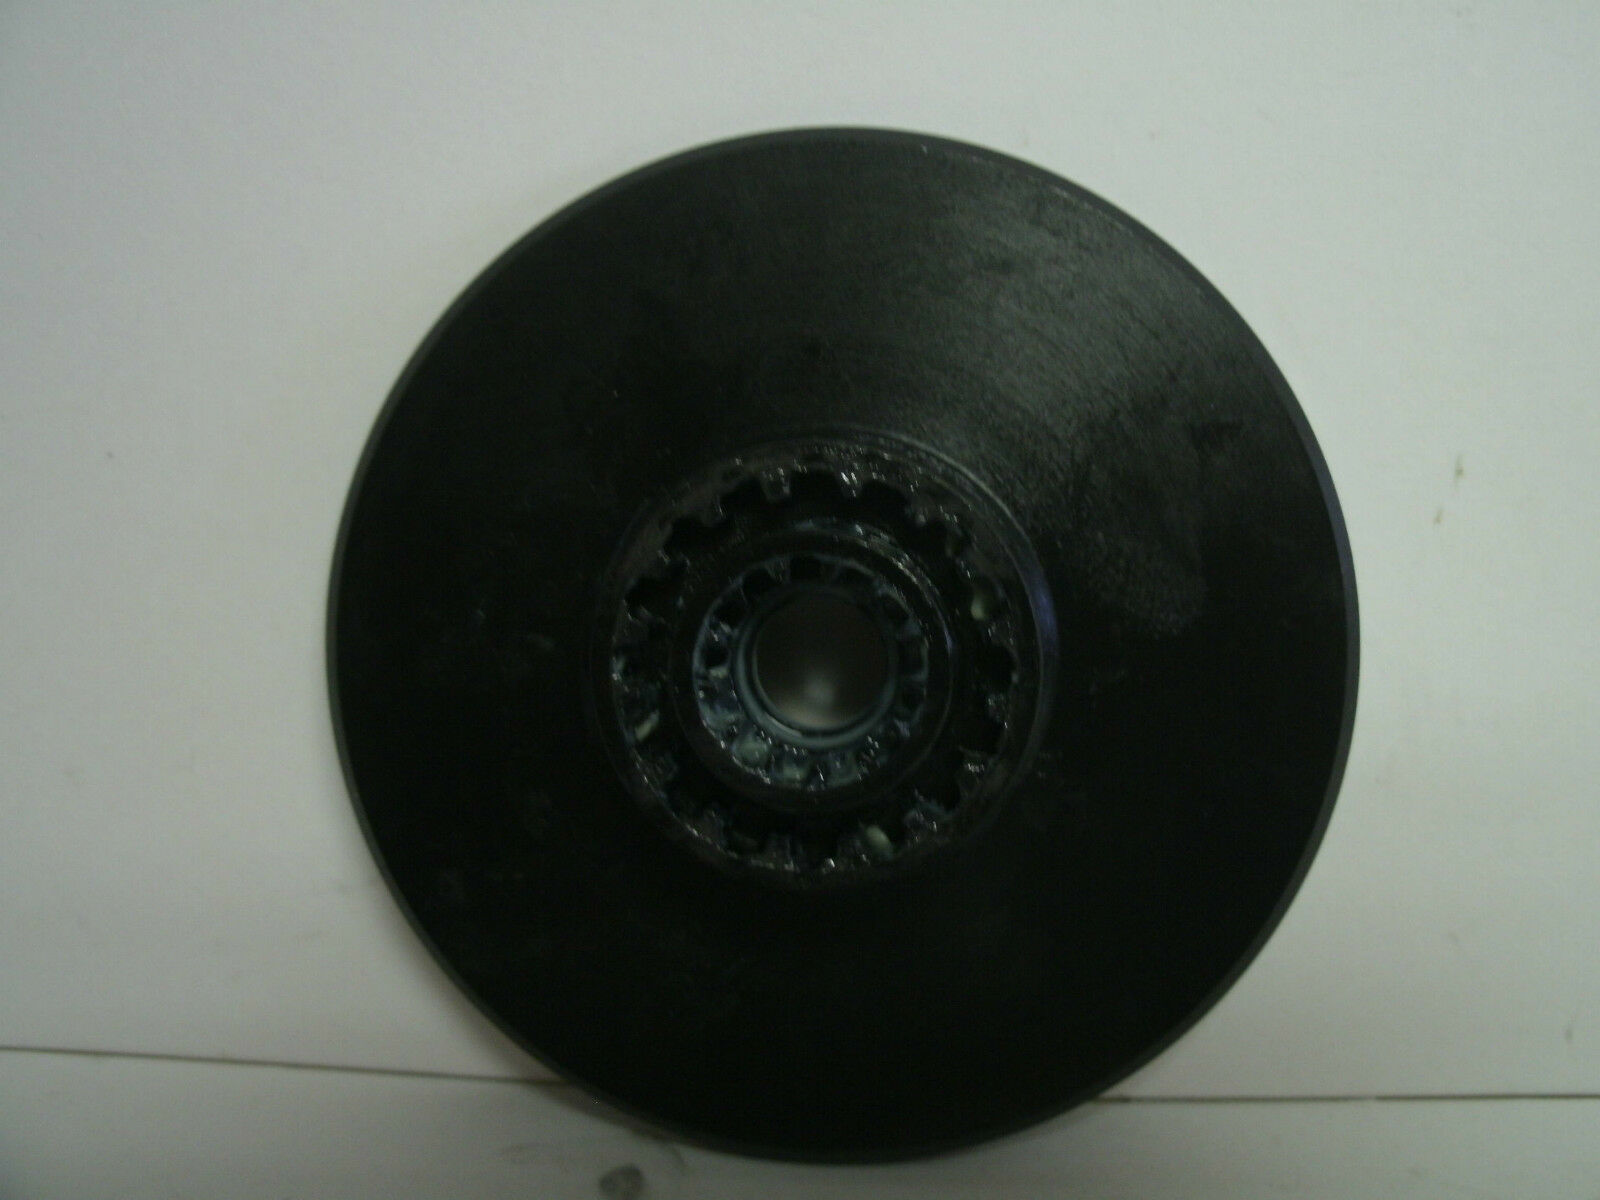 USED SHIMANO REEL PART - Shimano TLD 50 LRS 2 Speed - Drag Set Plate & Washer